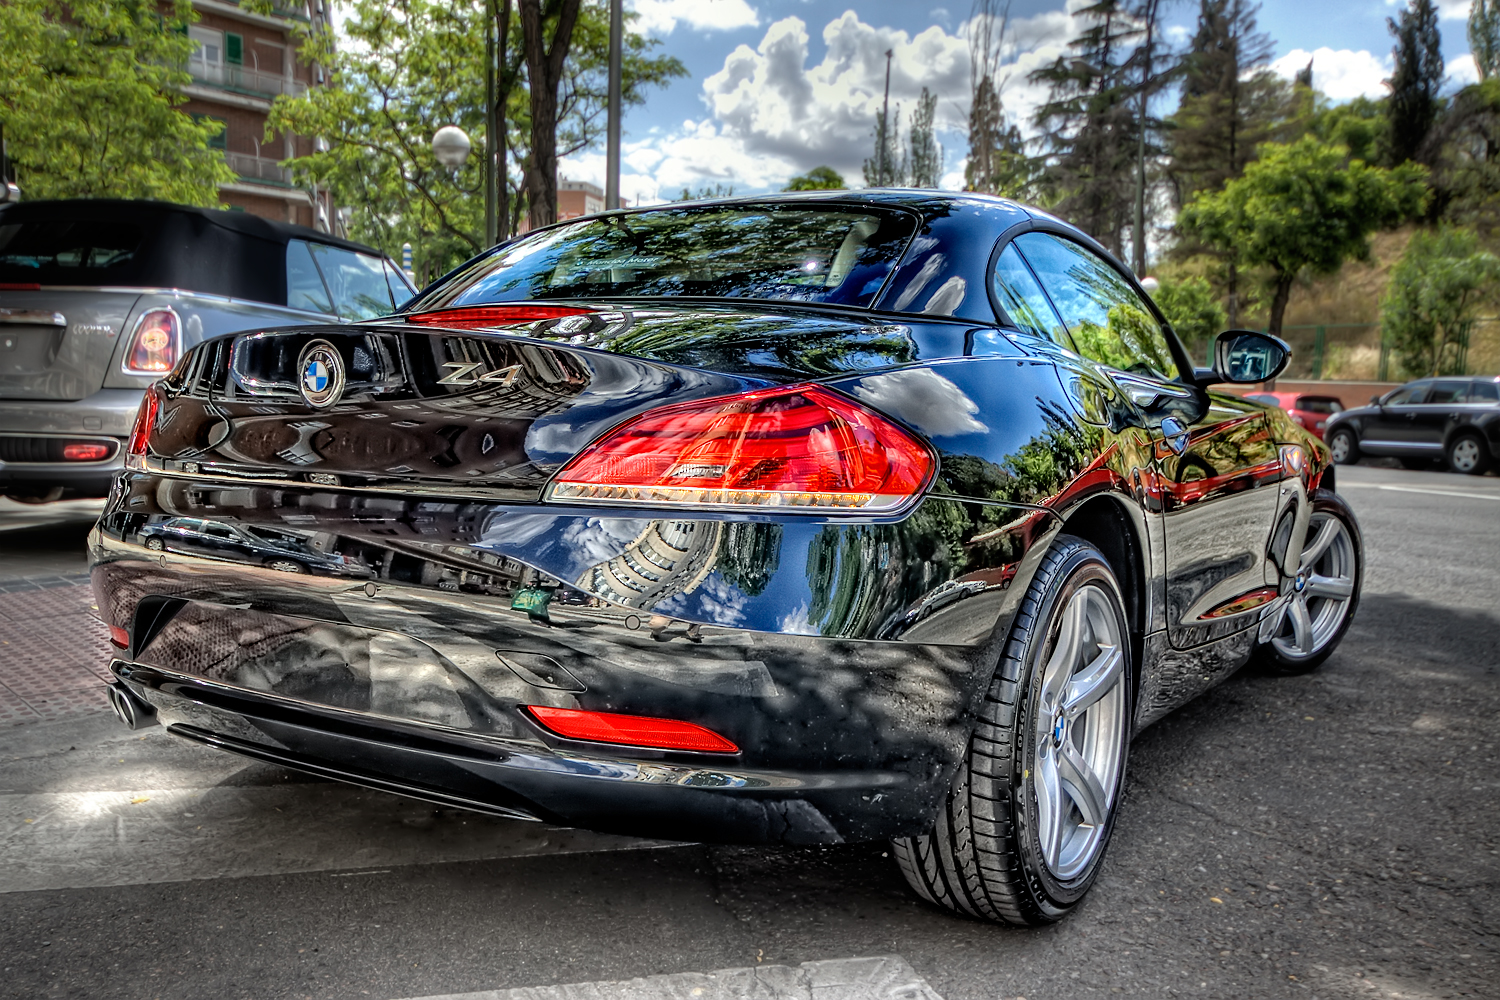 HDR from 3 bracketed exposures